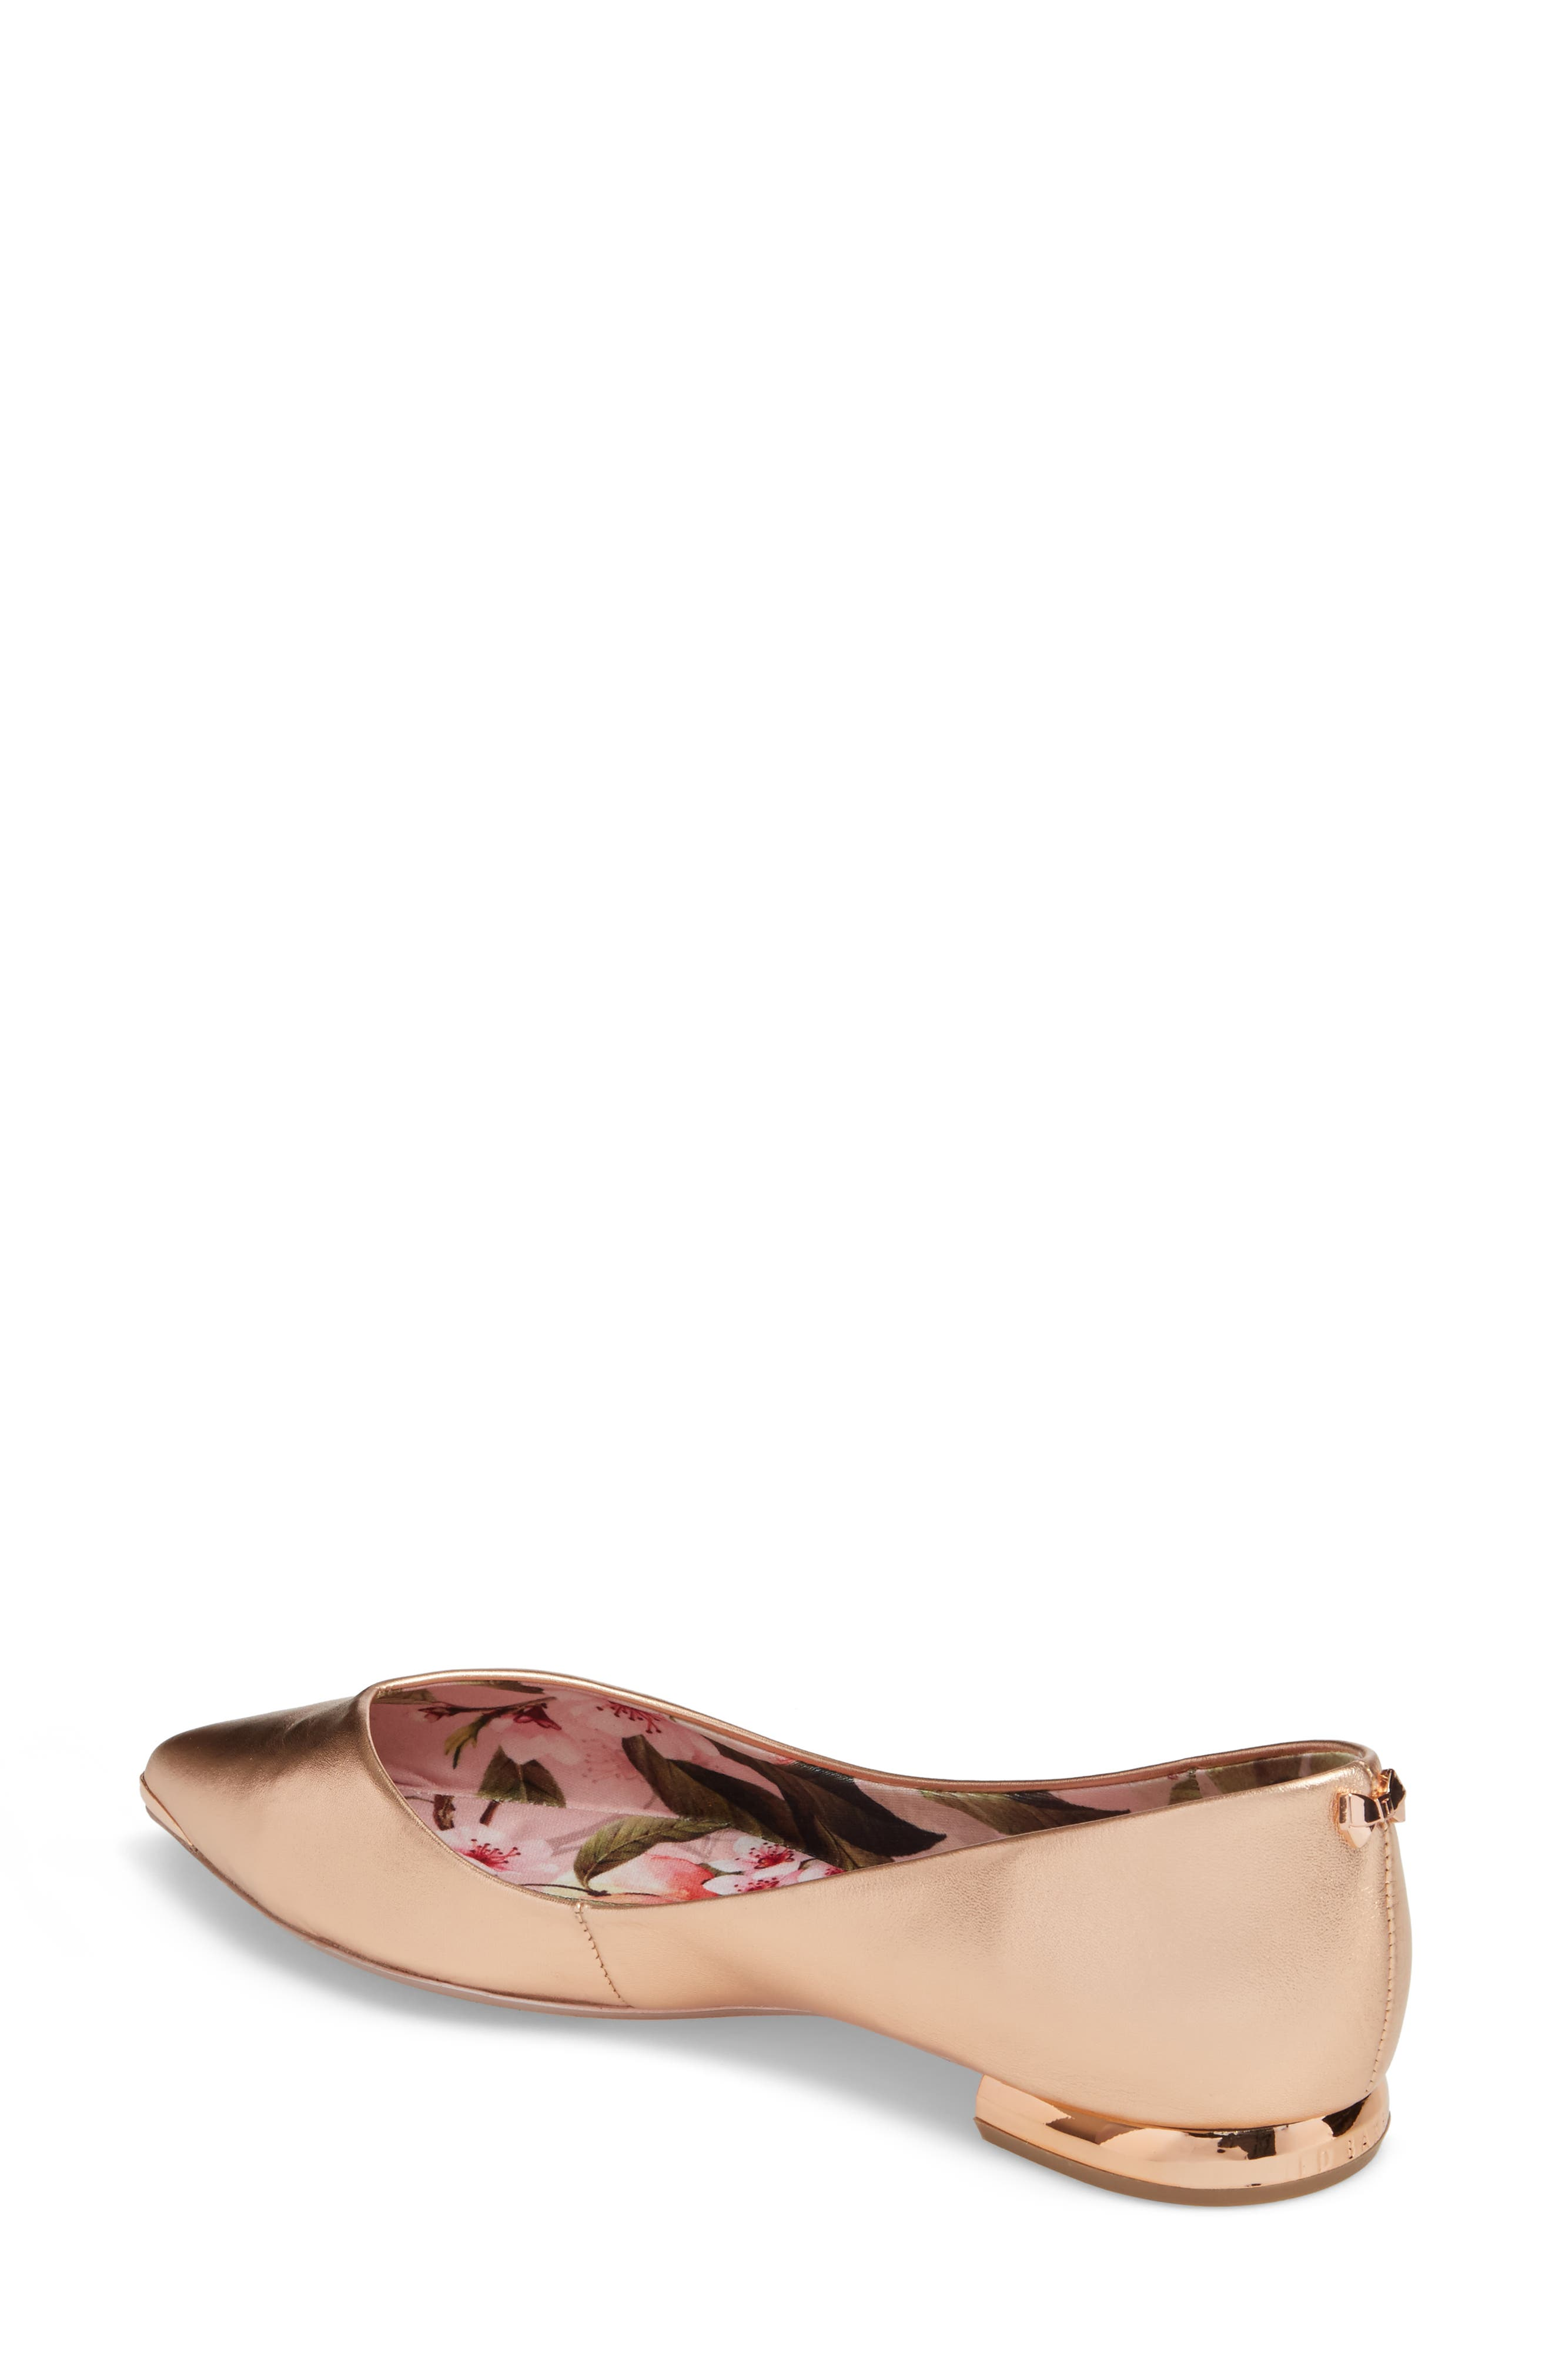 Grasce Flat,                             Alternate thumbnail 2, color,                             Rose Gold Leather